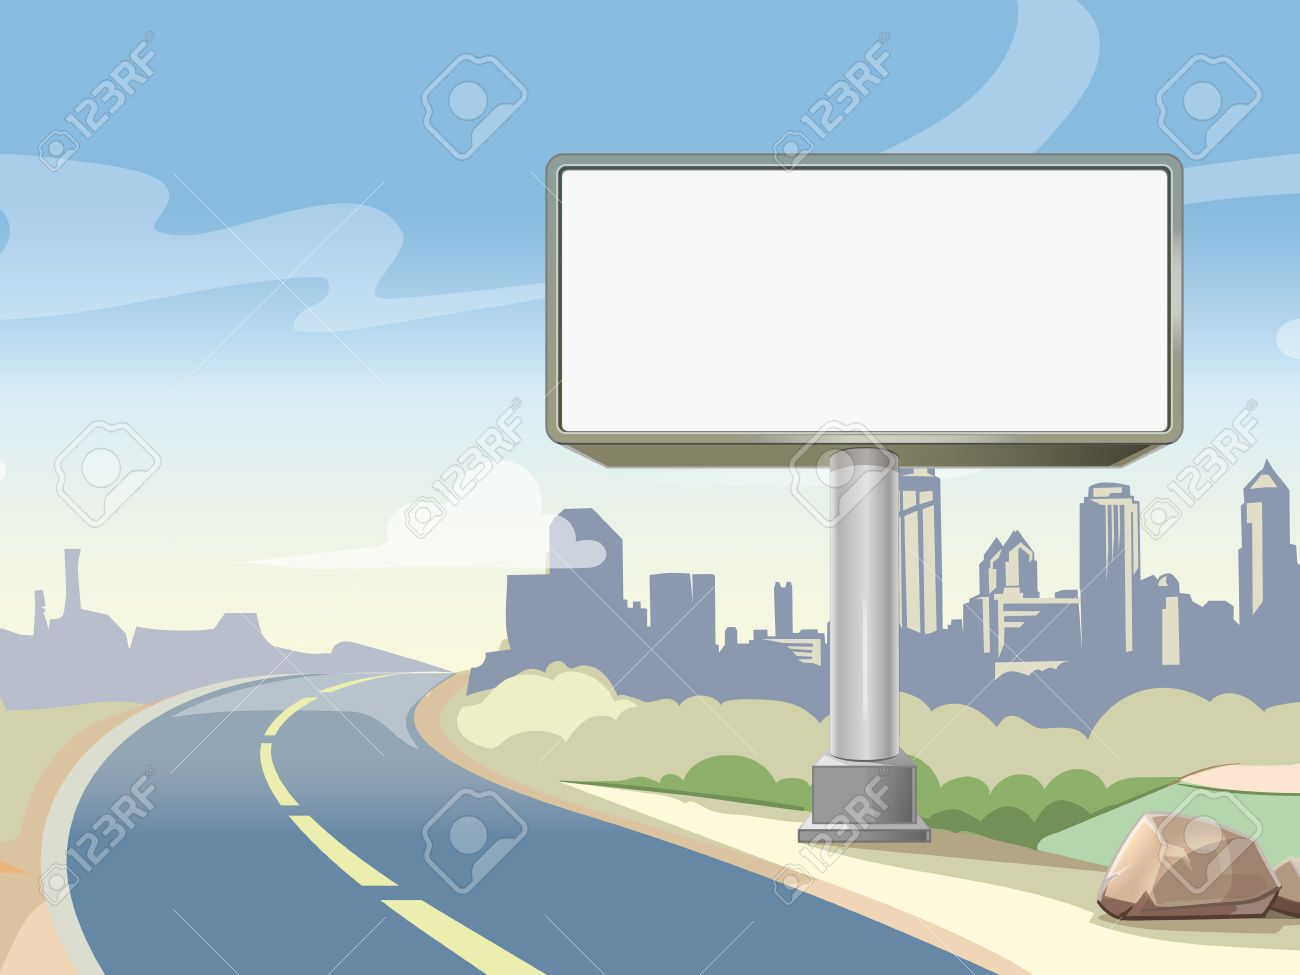 Blank advertising highway billboard and urban landscape. Commercial advertisement outdoor, board poster. Vector illustration - 51644314